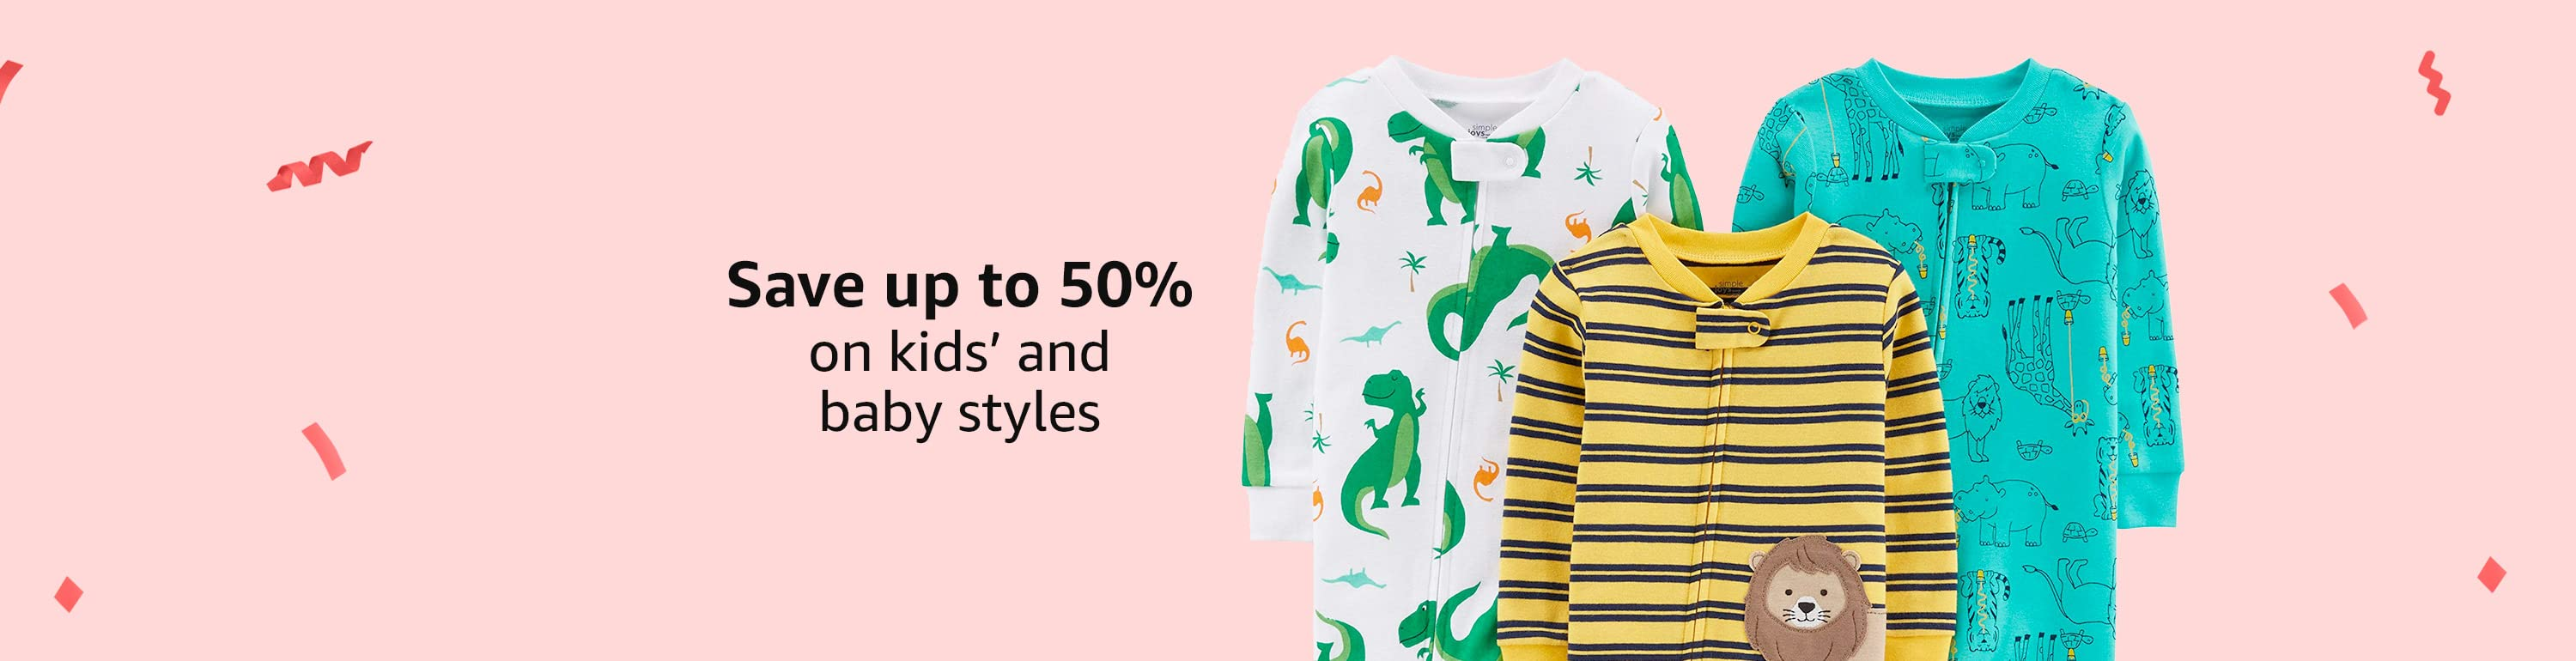 Save up to 50% on kids' and baby styles